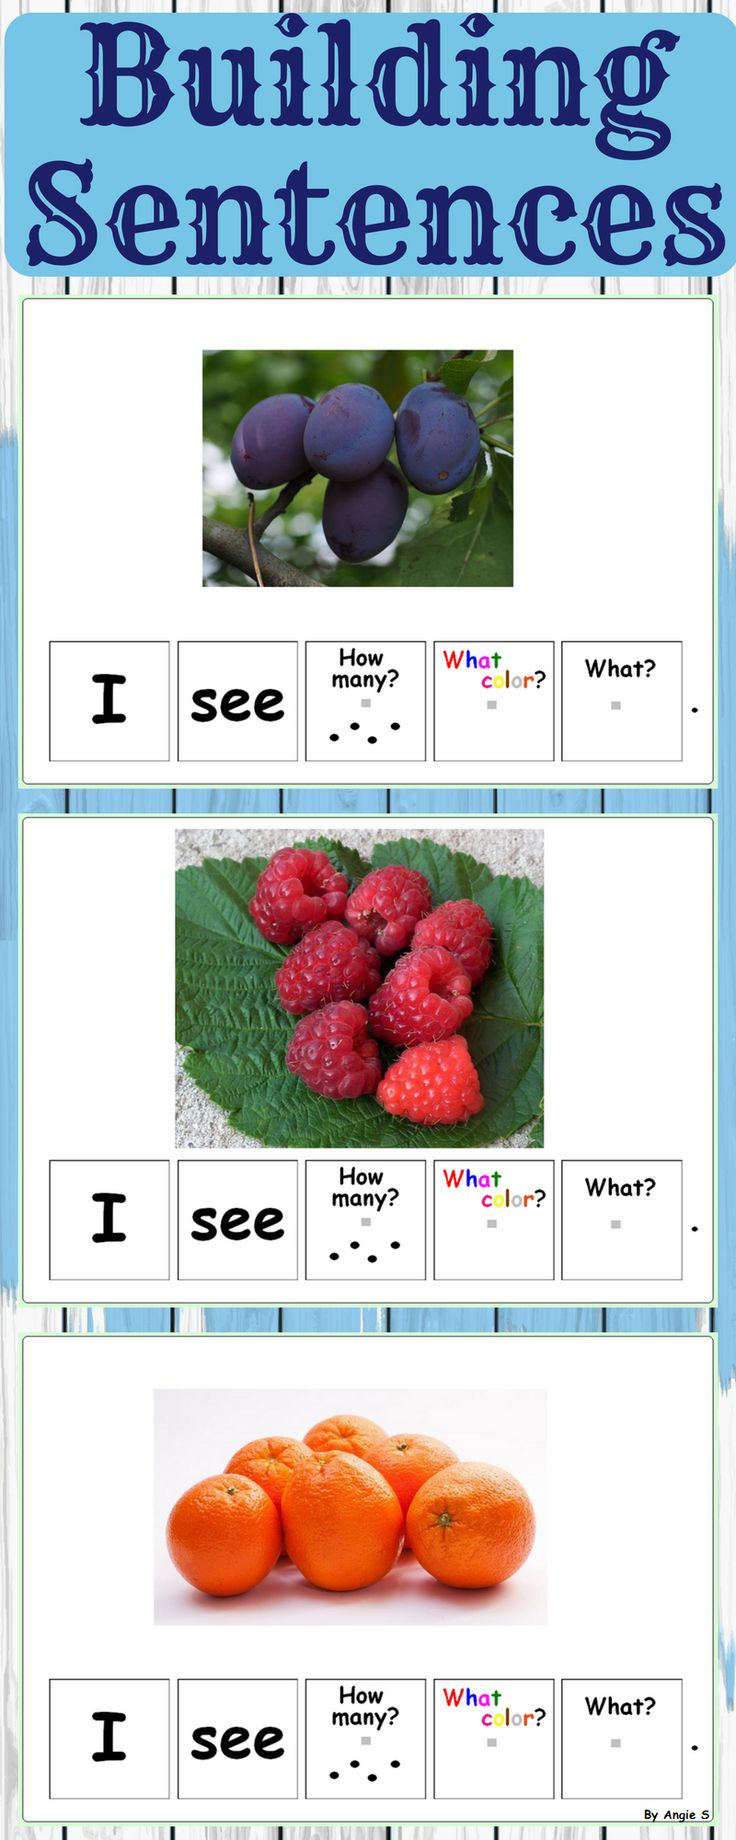 Fruits and Berries Building Sentences Activity is great for kindergarten, preeschool and special needs students. Forming sentences is very important for young learners or those with autism. This activity uses real-life pictures for easy recognition of common objects and sight words as sentence starters. It is perfect for early readers. #tpt #teacherspayteachers #fruits #activities #students #slpeeps #sped #autismresources